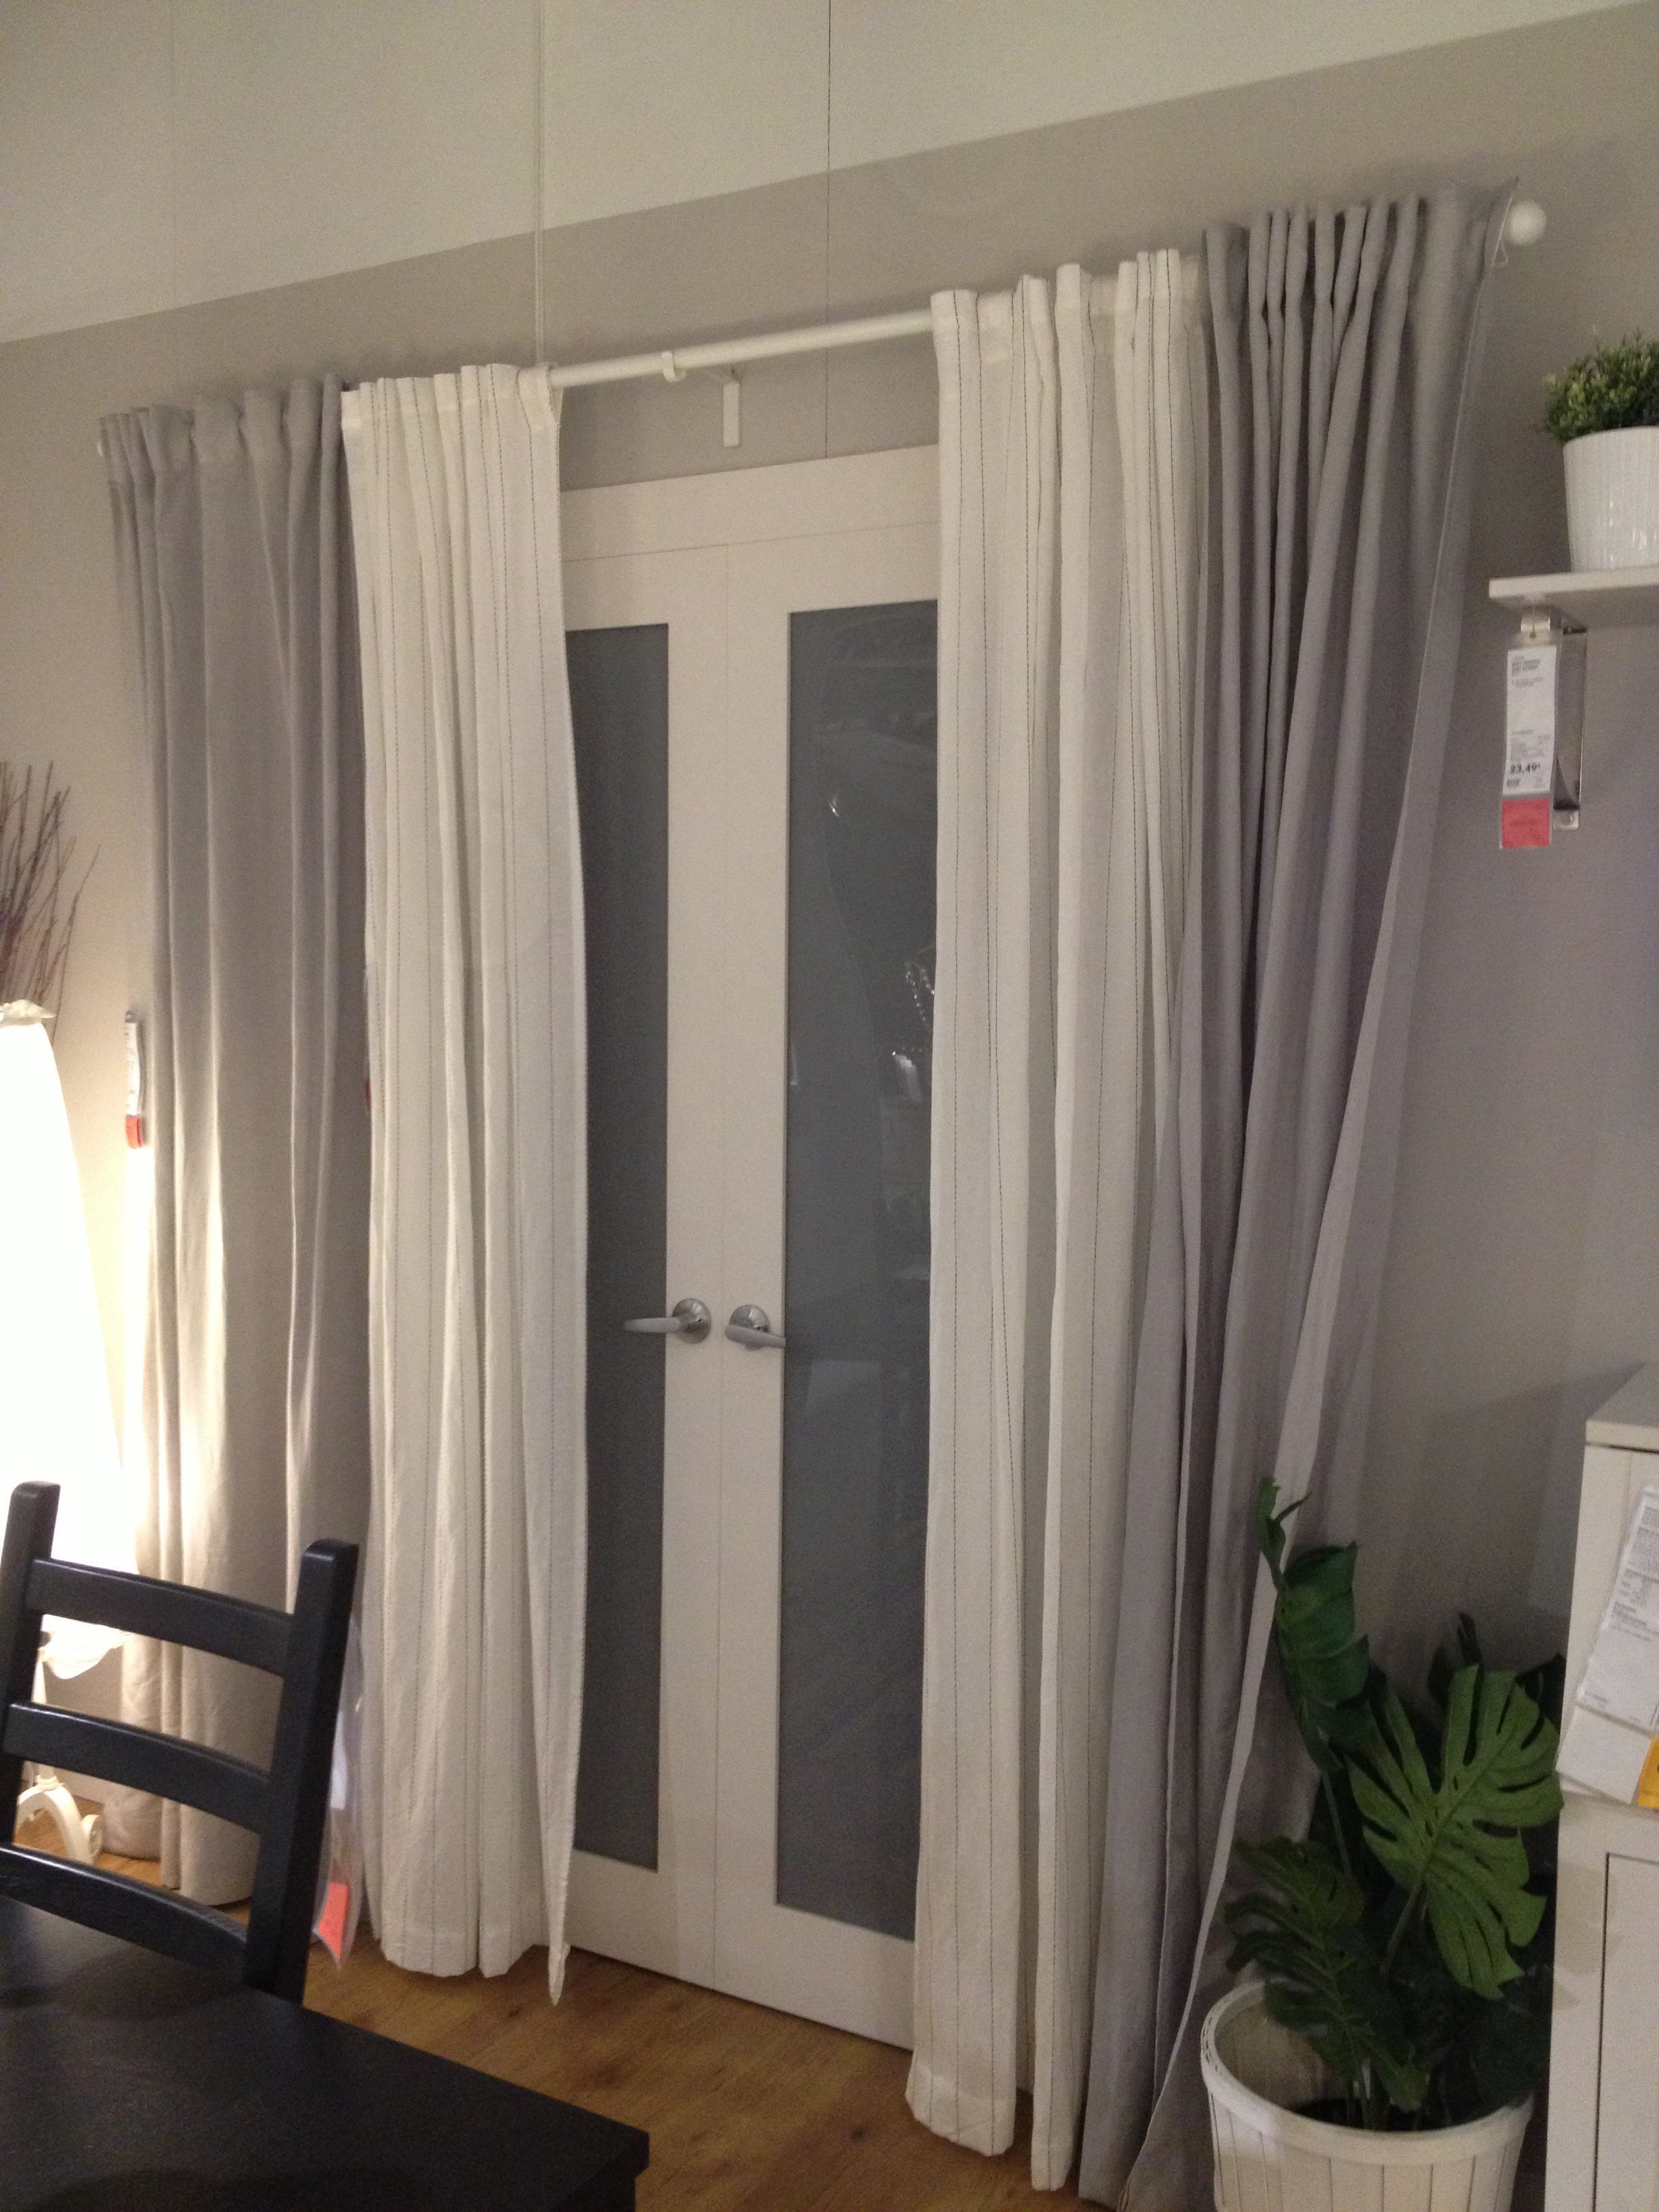 Go For Your Own Way Of Patio Door Curtains